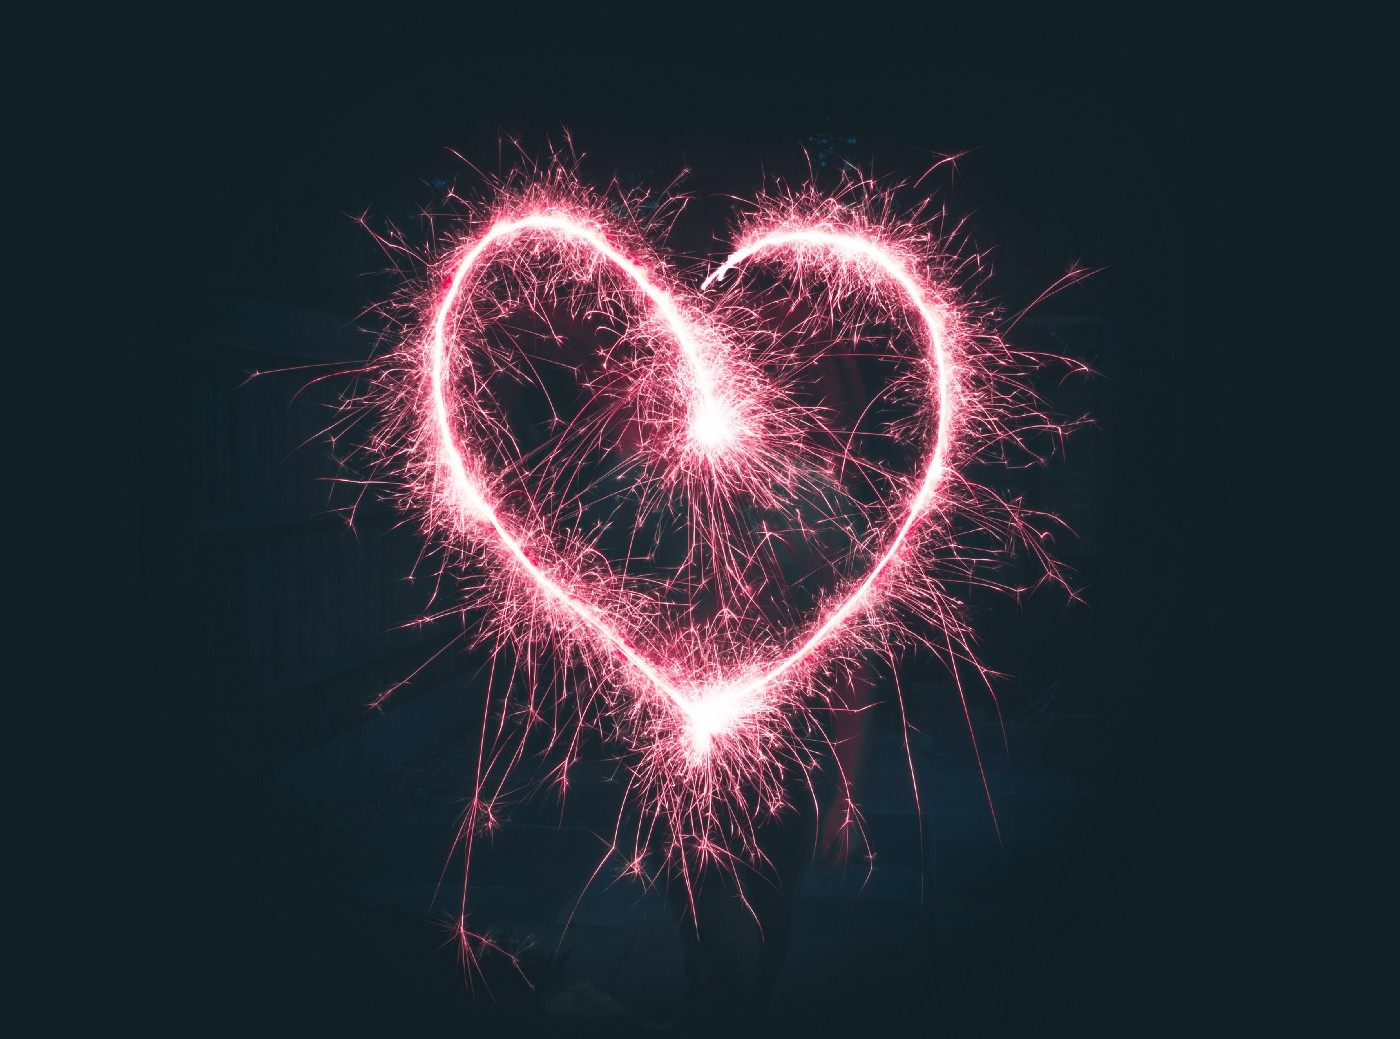 A heart made by fireworks in a black sky